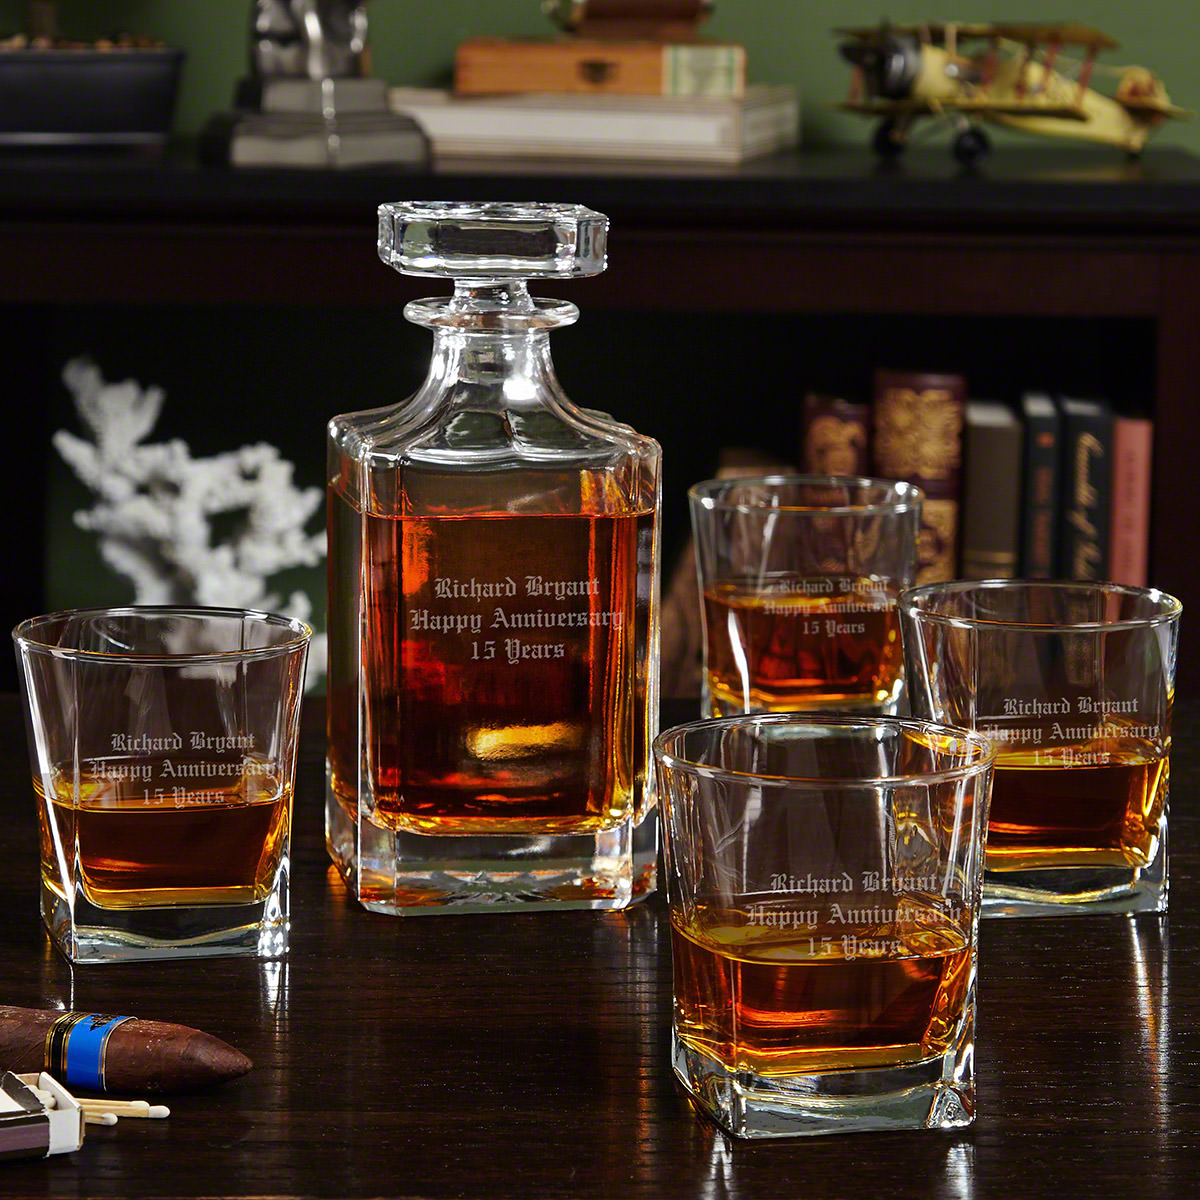 Carson Personalized Decanter with Rutherford Whiskey Glasses